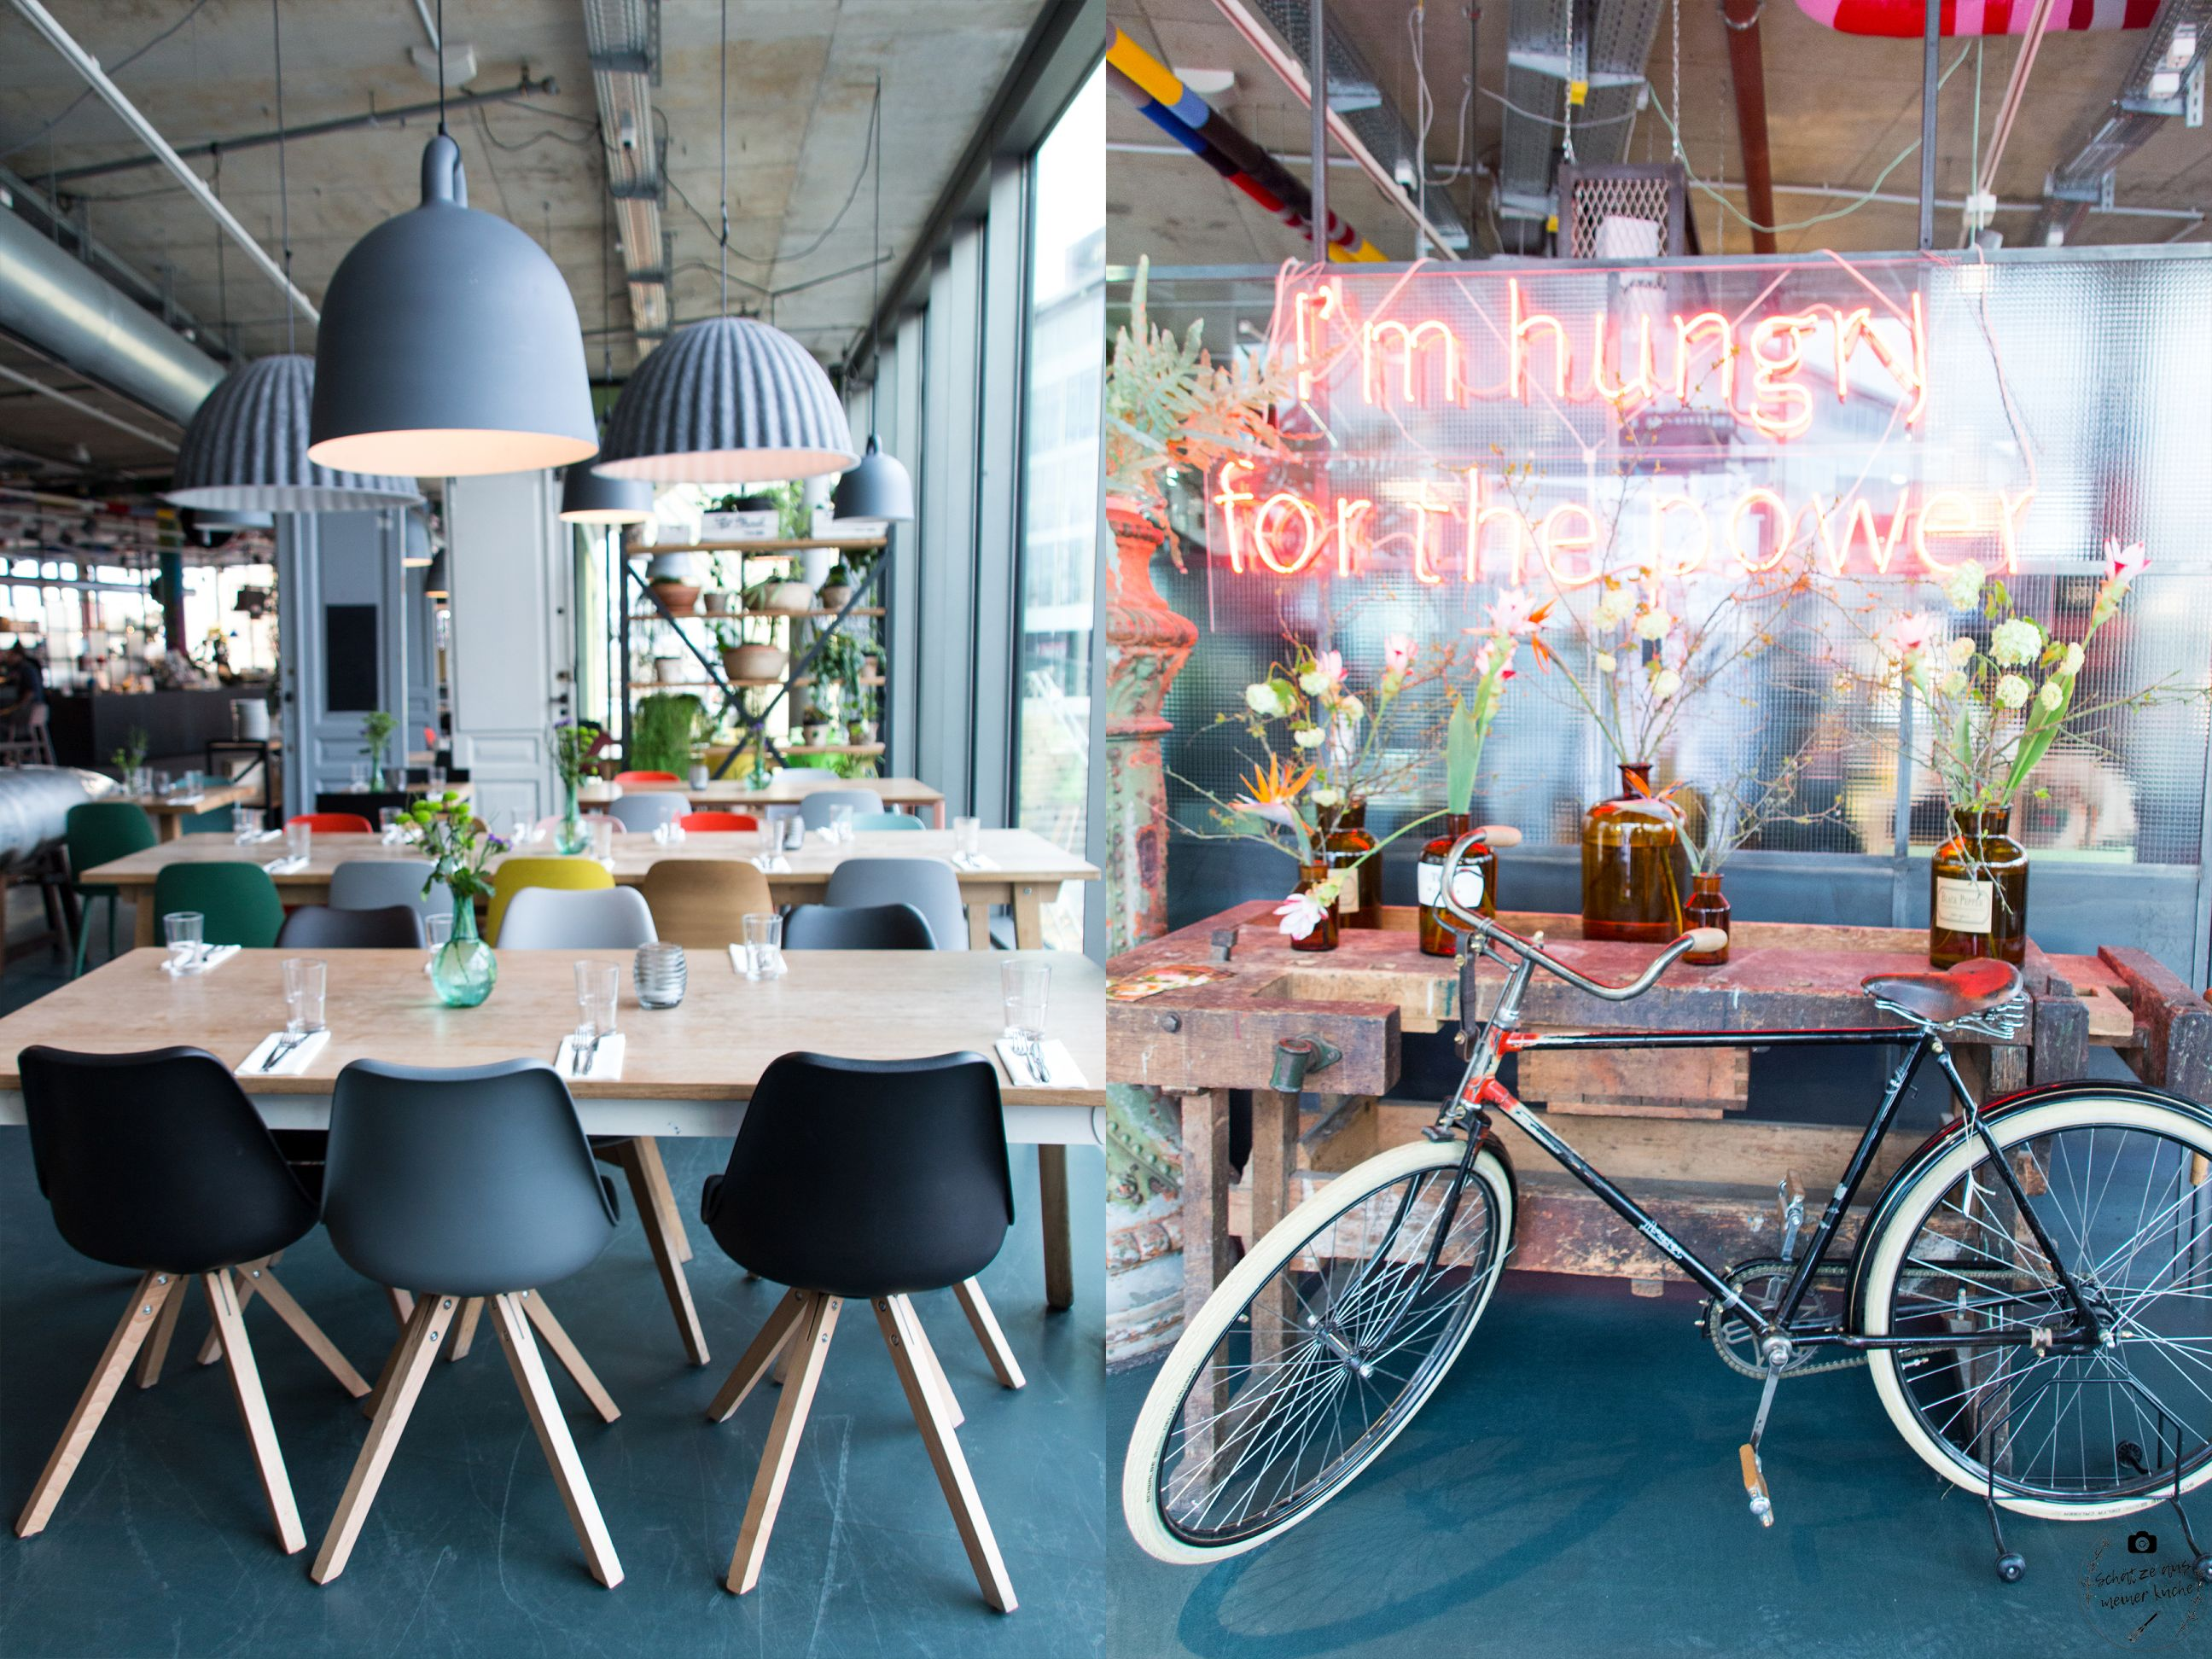 Berlin foodguide 5 caf s restaurants sch tze aus for Kuchen concepte berlin